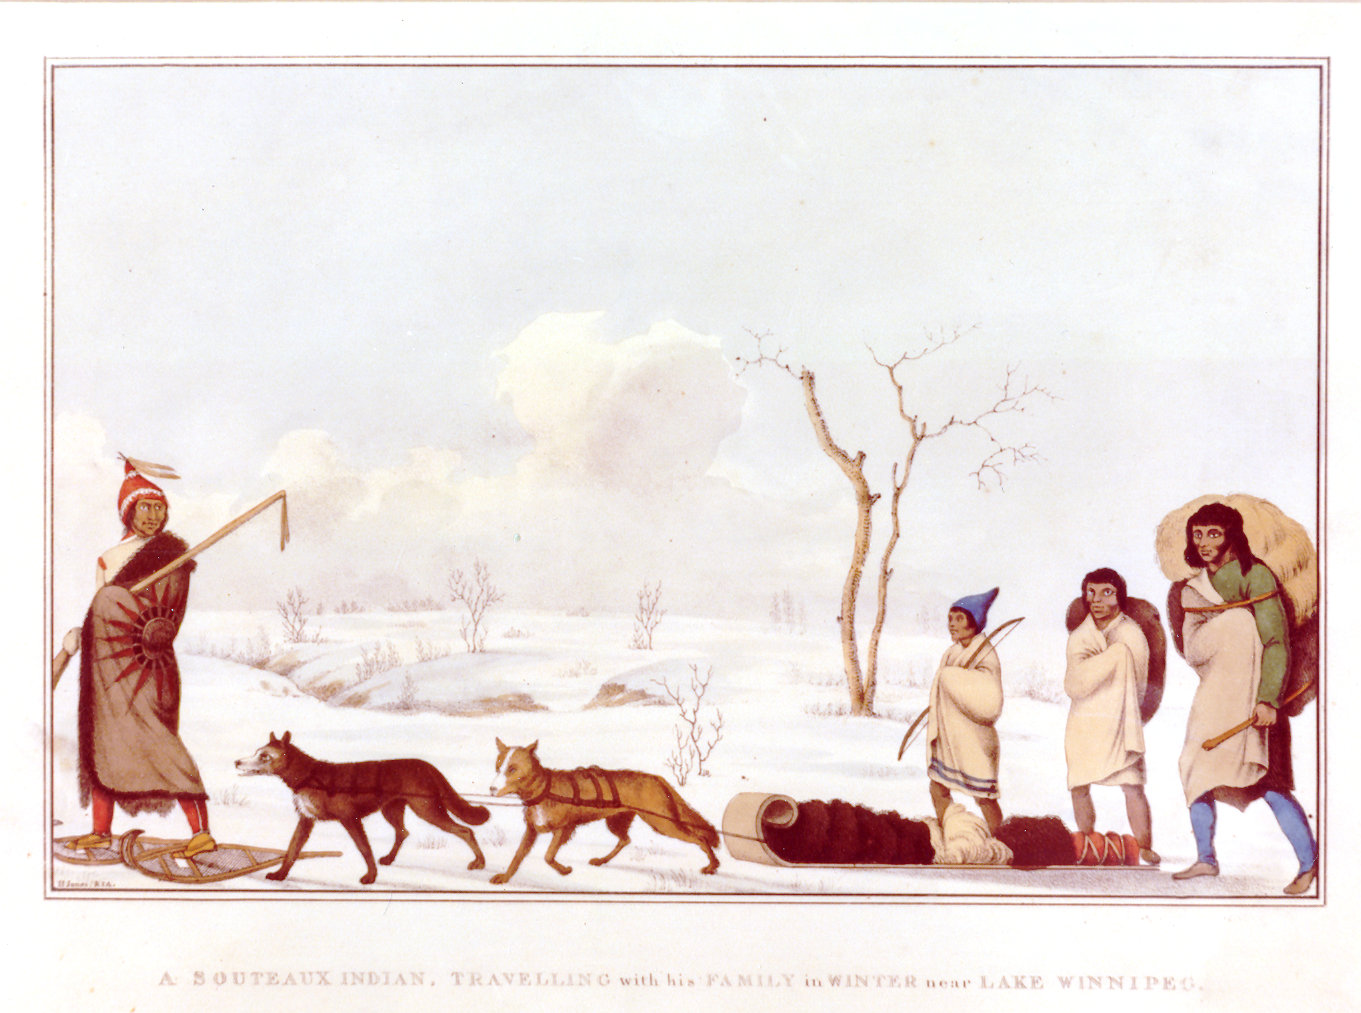 1823 Sauteux family travelling